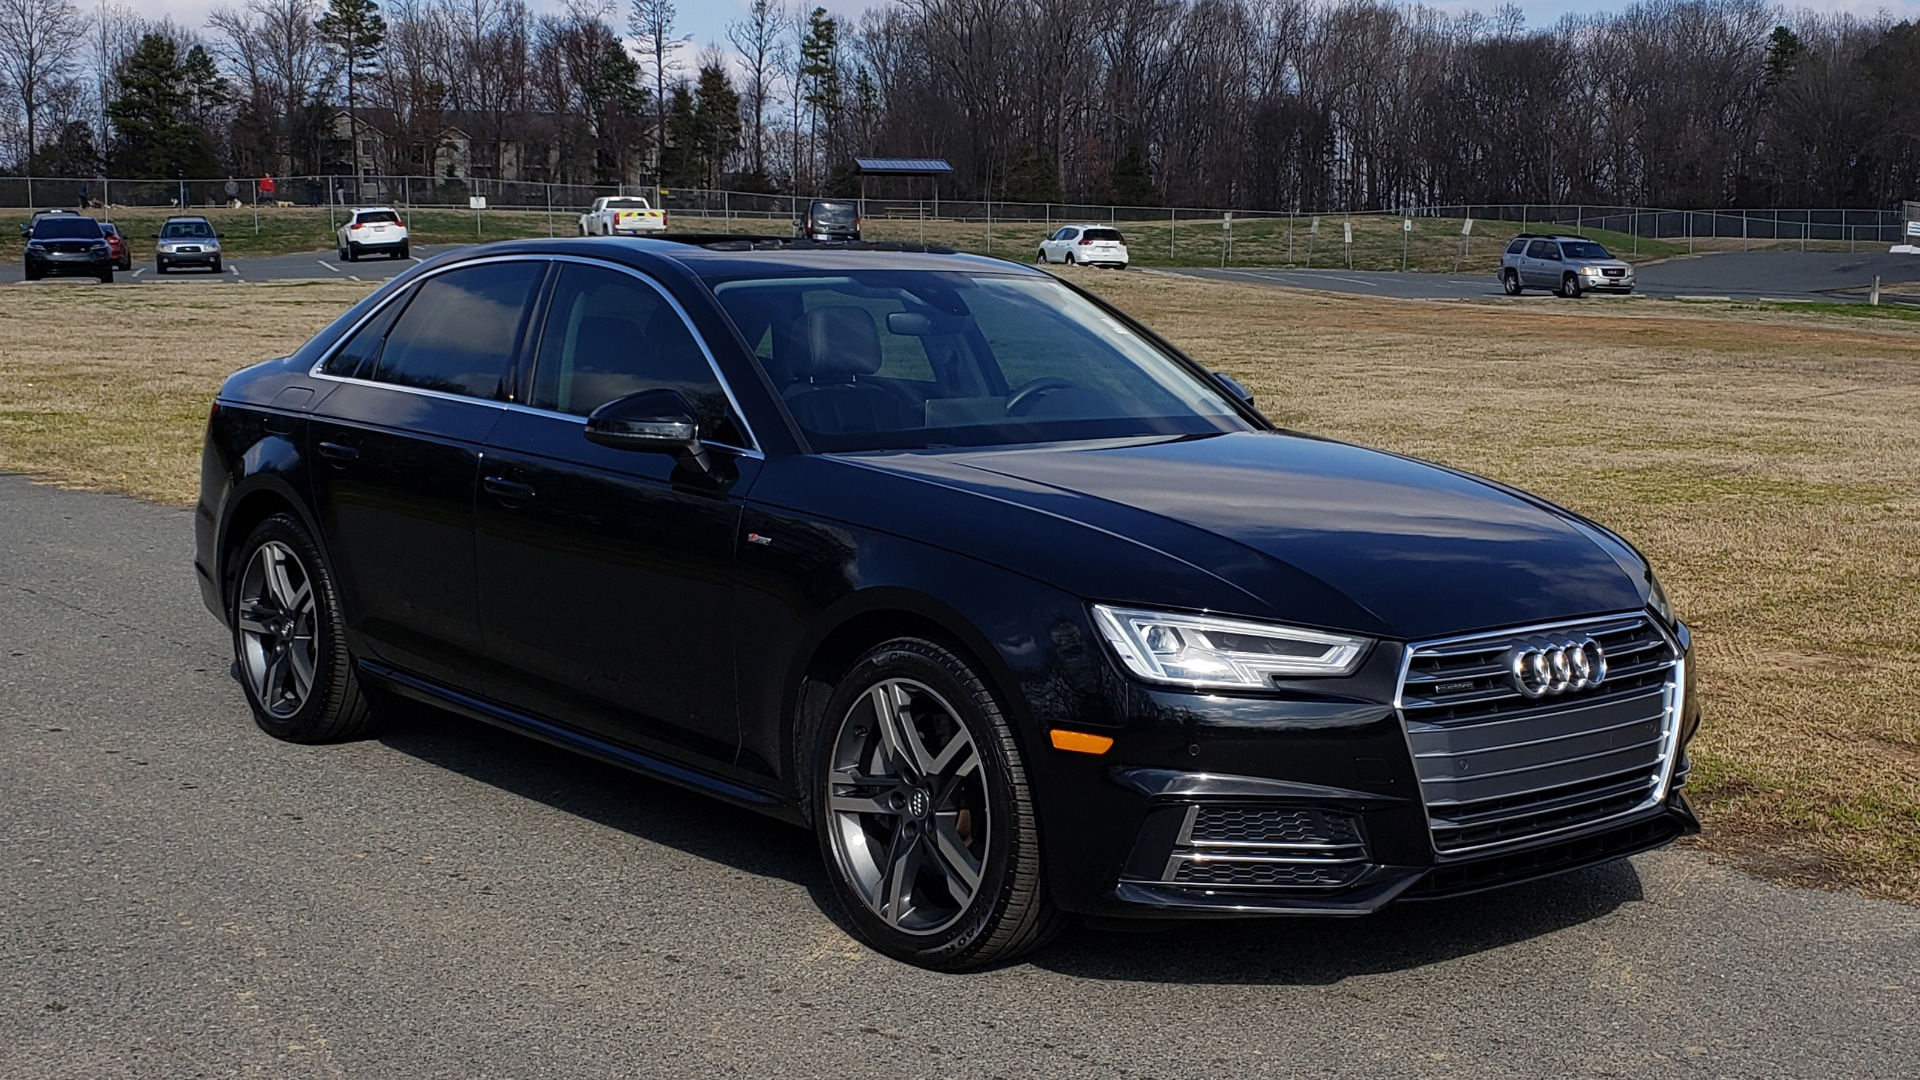 Used 2017 Audi A4 PREMIUM PLUS 2.0T / TECH / NAV / CLD WTHR / SUNROOF / REARVIEW for sale Sold at Formula Imports in Charlotte NC 28227 7